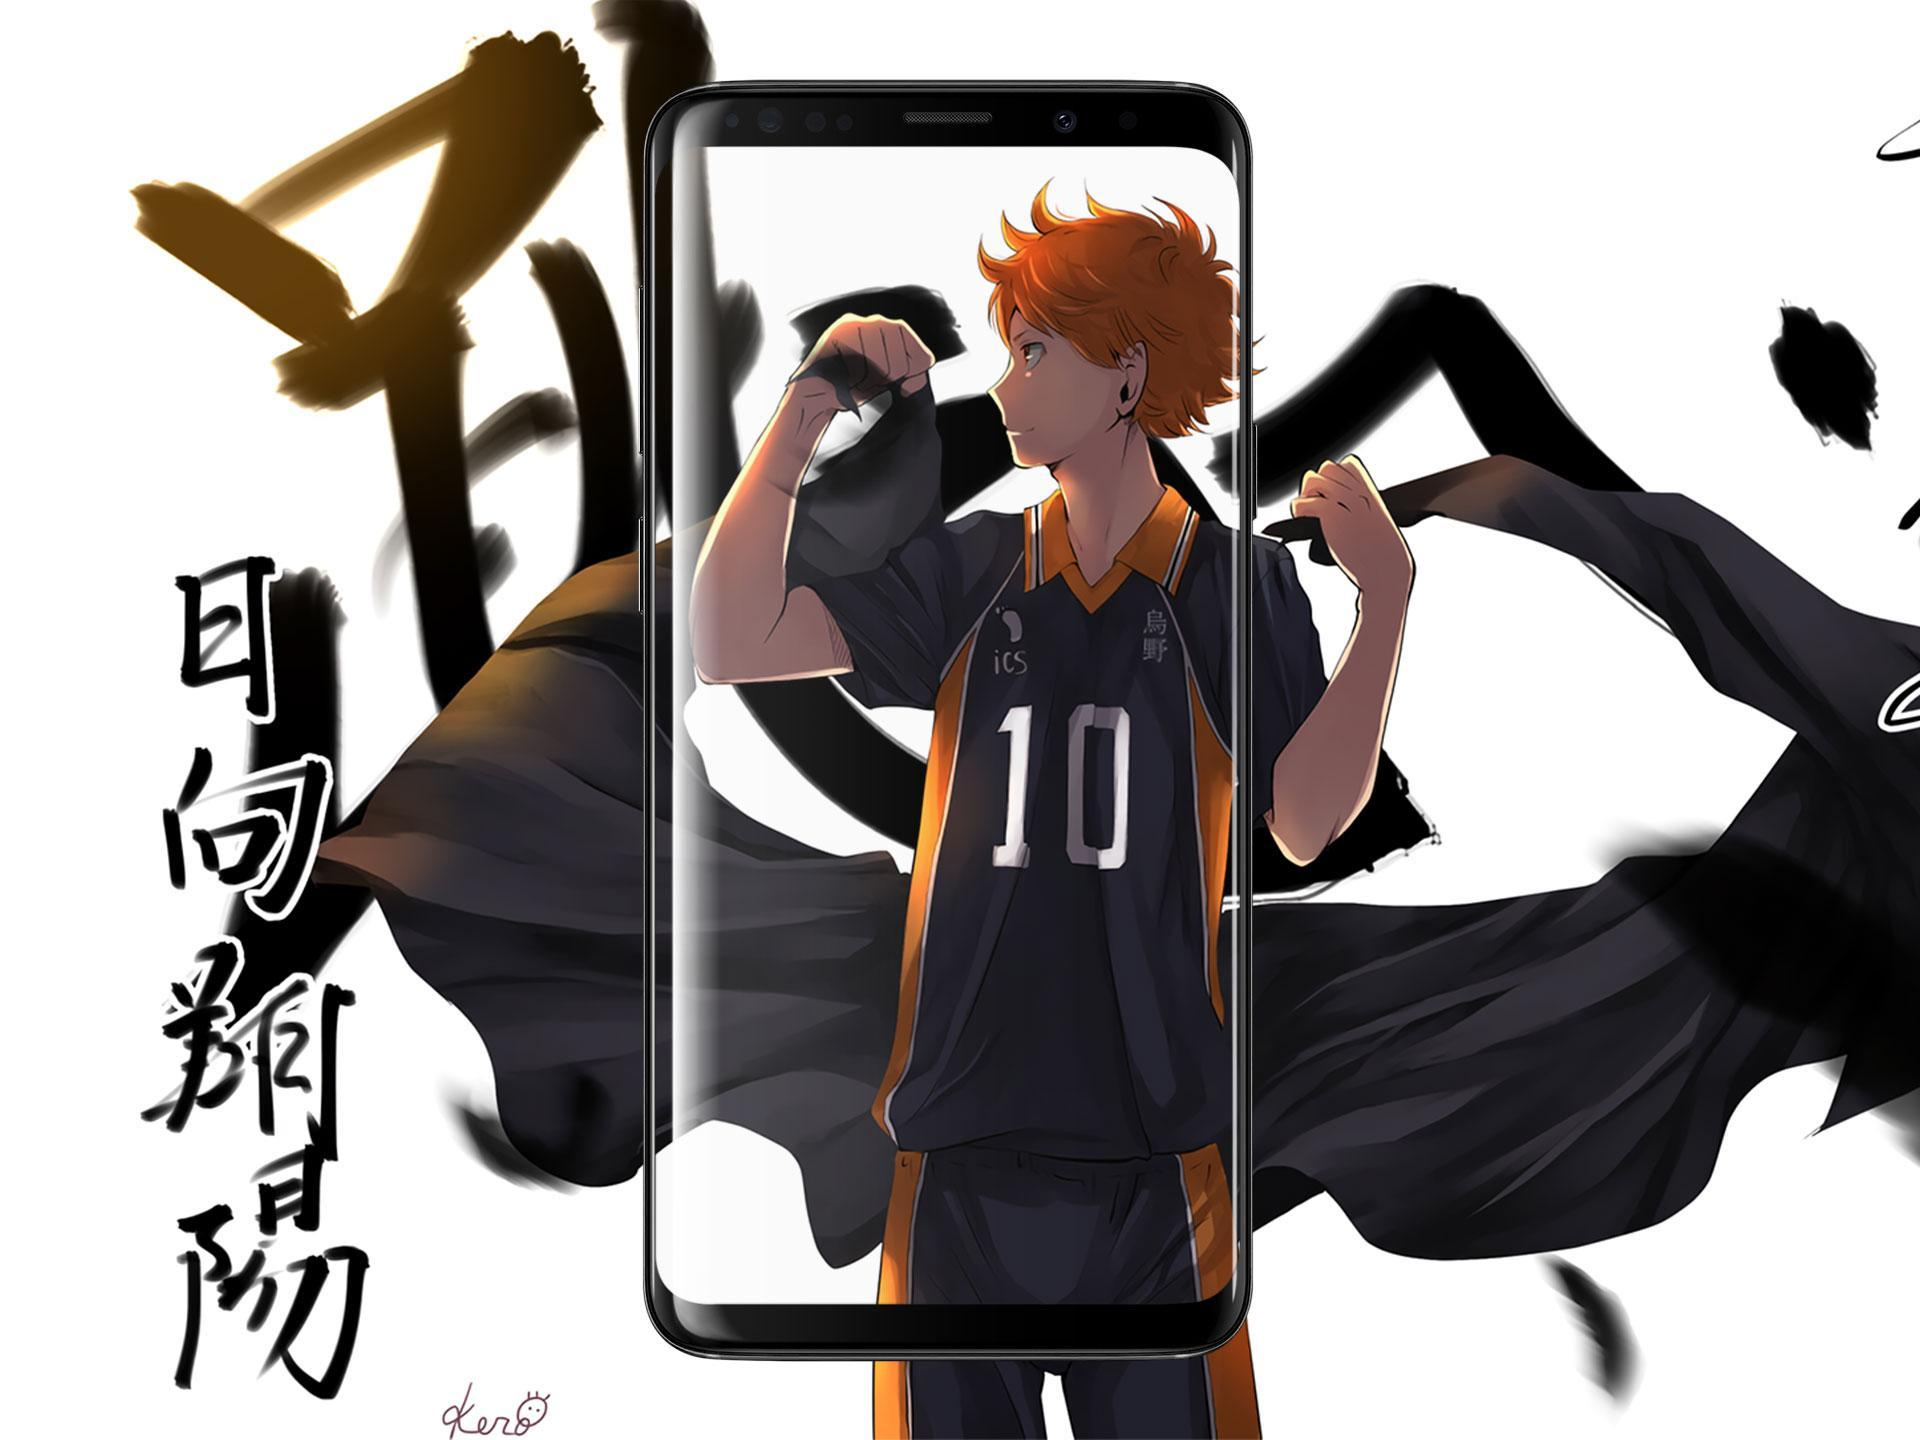 Haikyuu HD Wallpaper for Android   APK Download 1920x1440